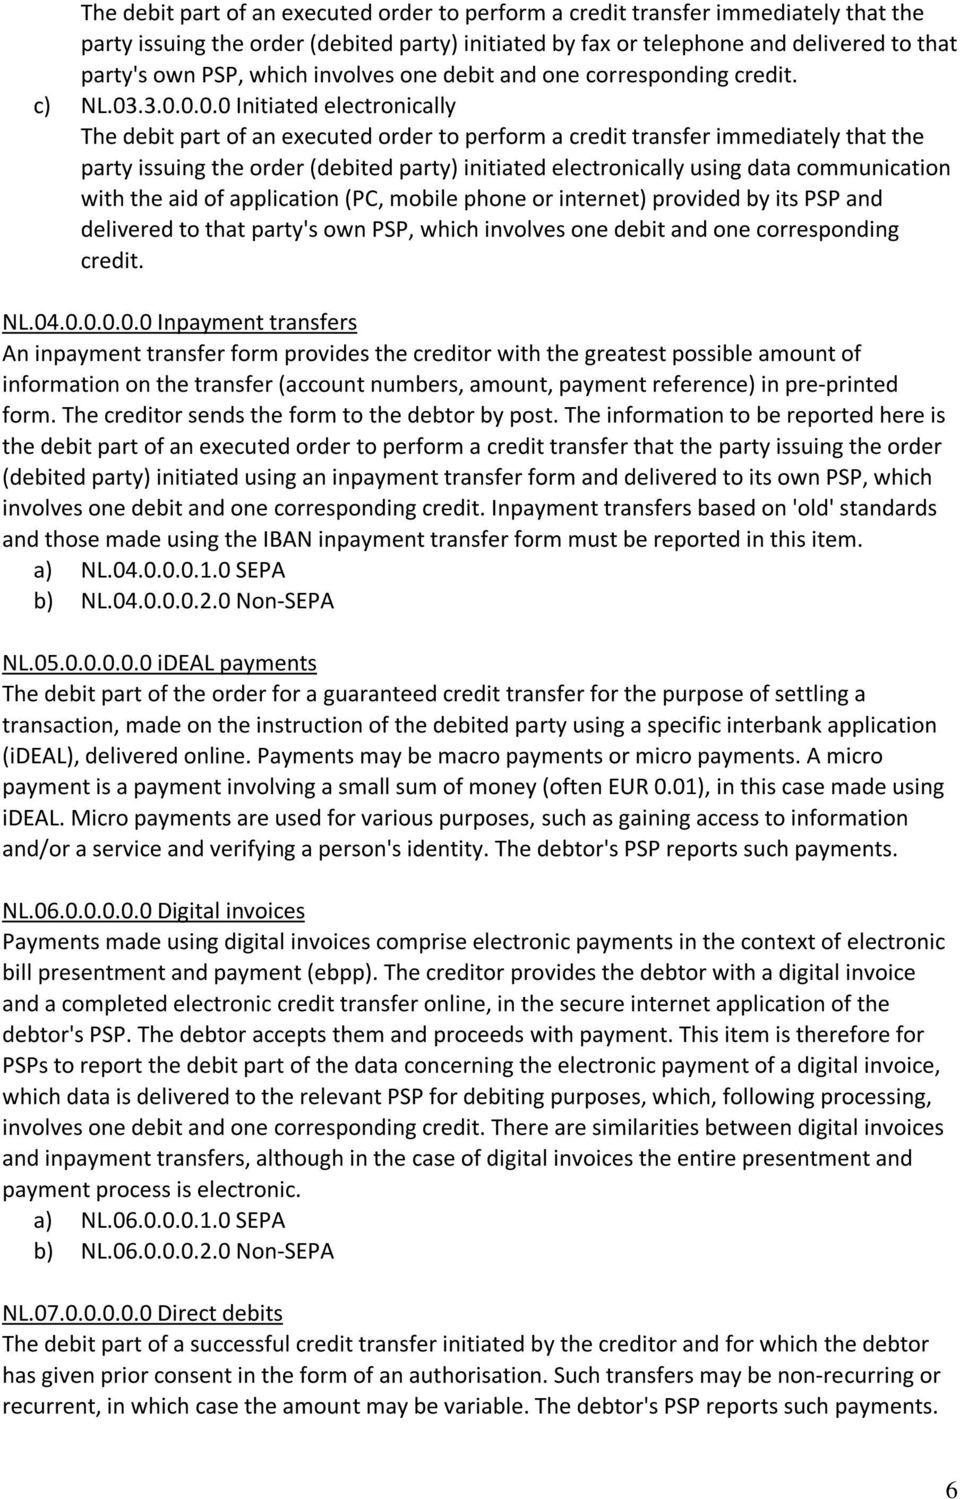 .3.0.0.0.0 Initiated electronically The debit part of an executed order to perform a credit transfer immediately that the party issuing the order (debited party) initiated electronically using data